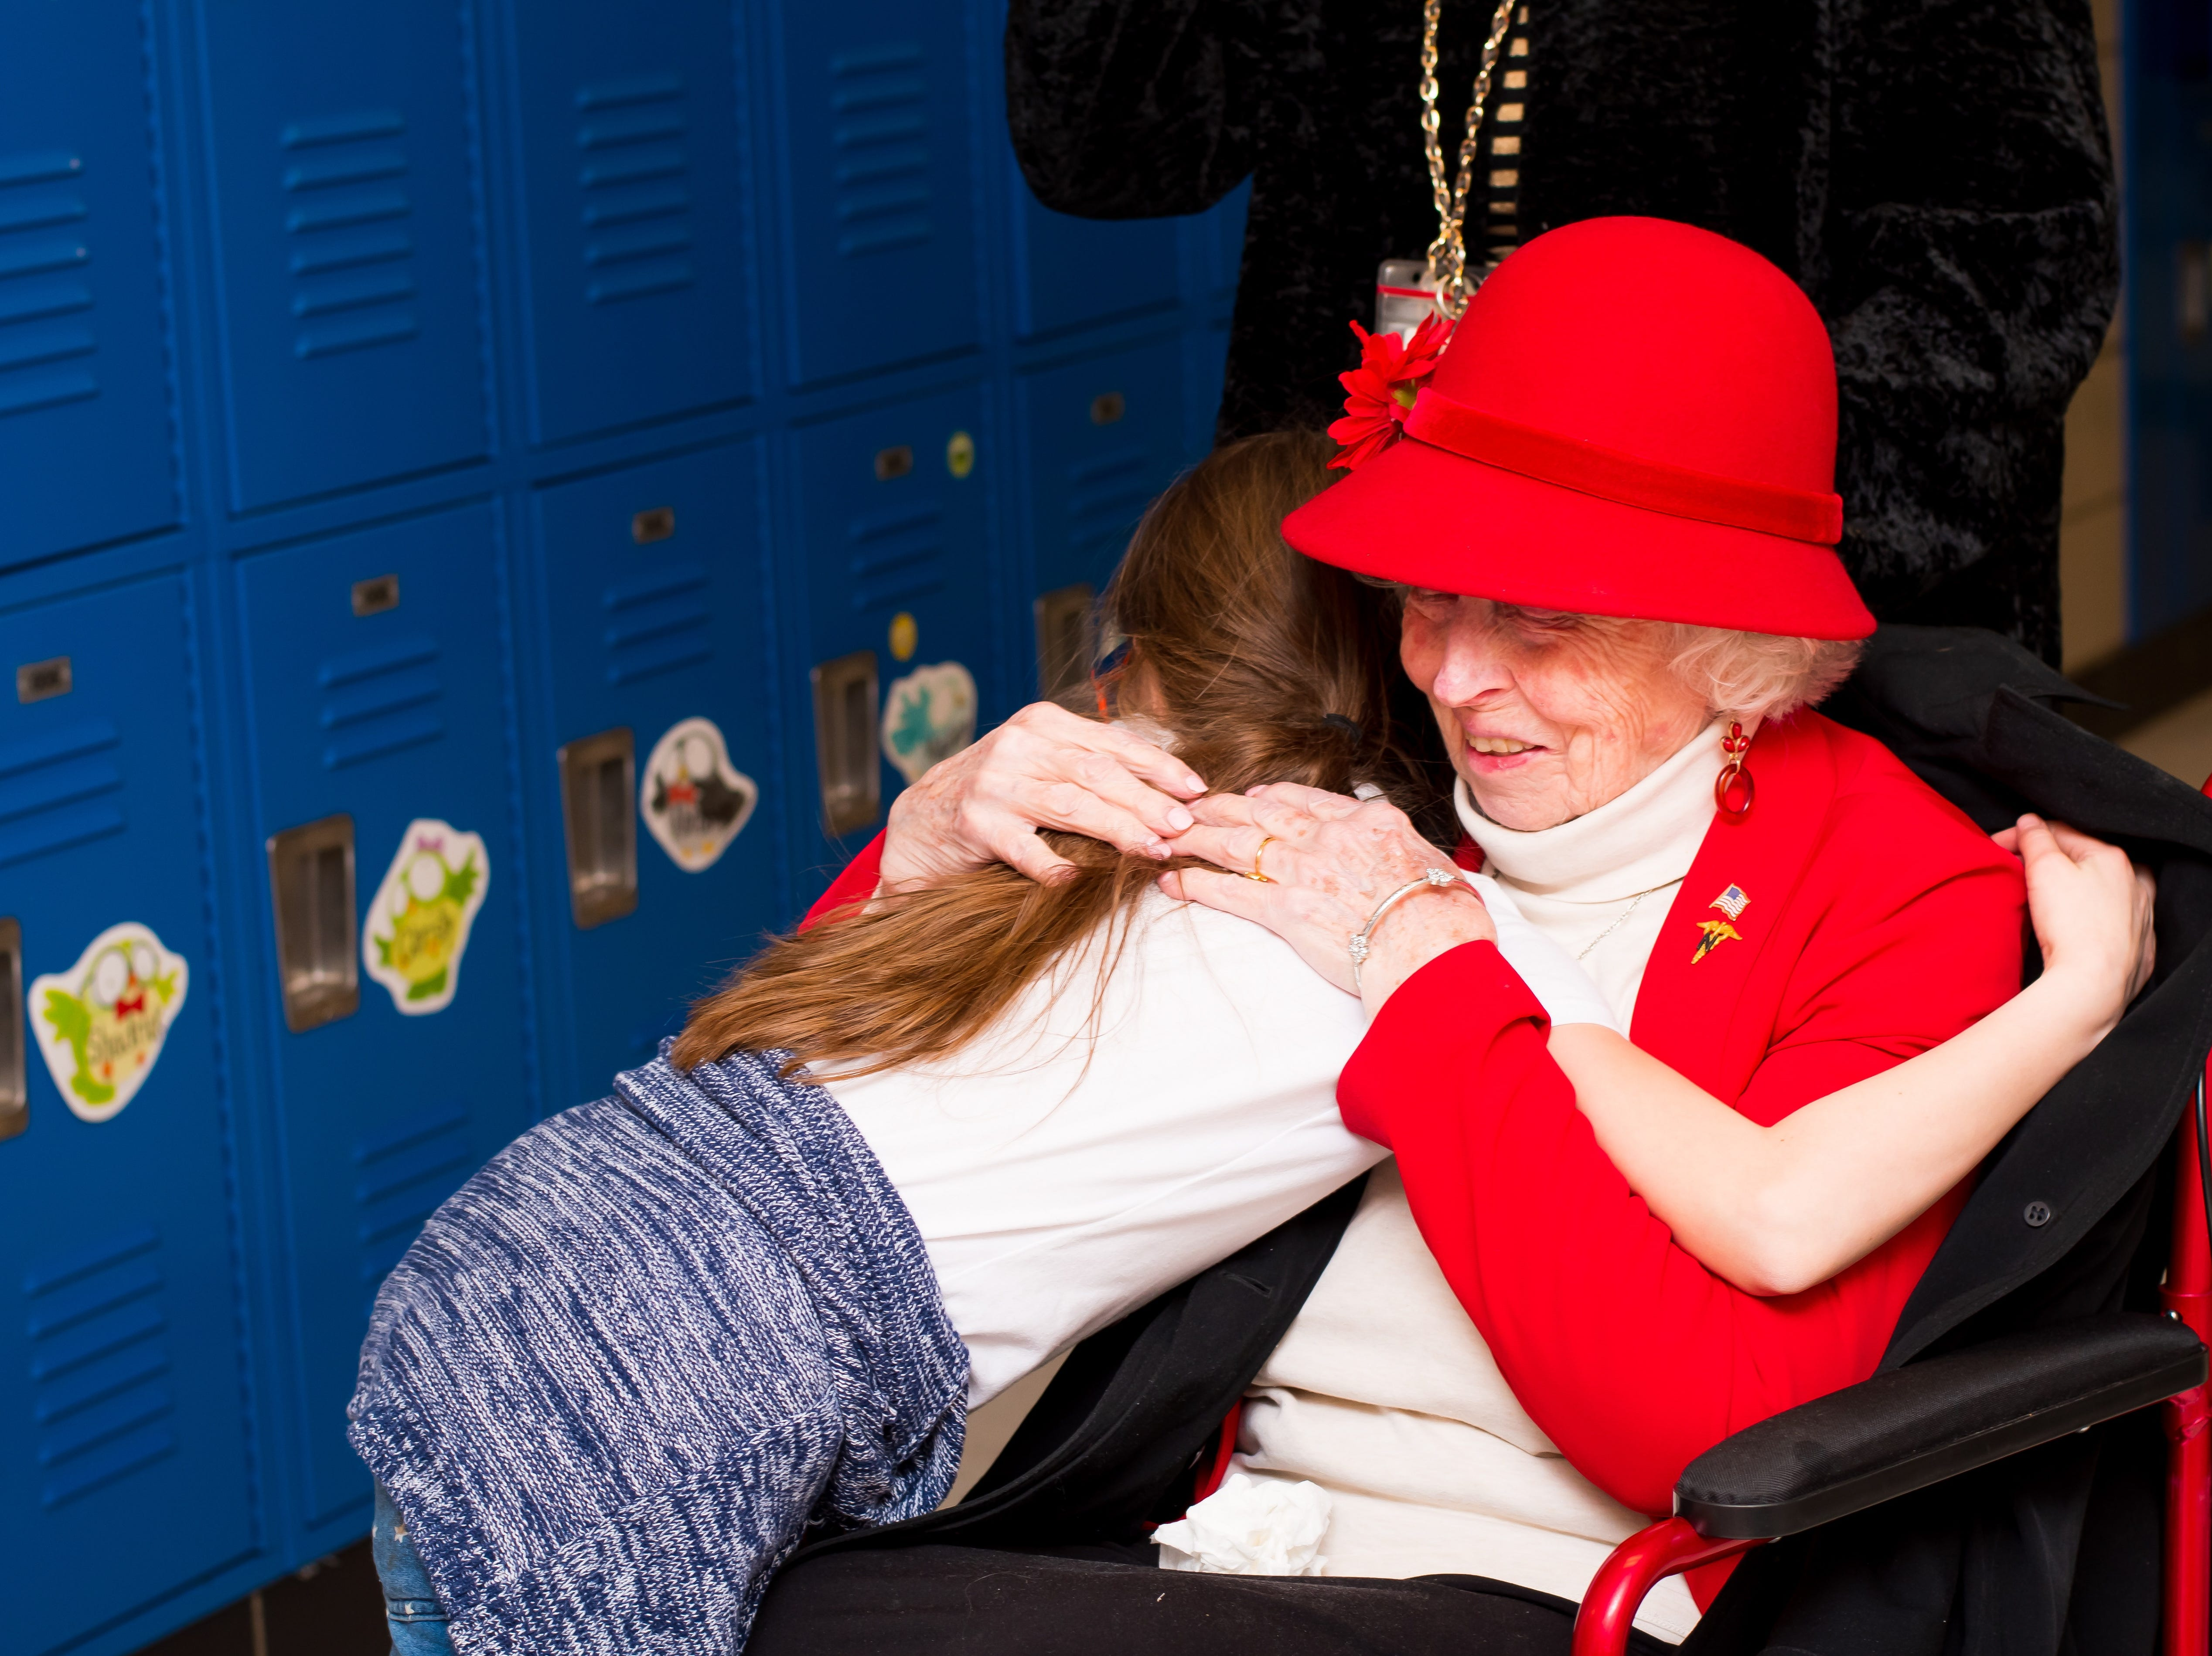 Amelia Lee, 9, of Clive greets WWII veteran Elaine Hamilton at the Celebrate Crestview event on Tuesday, Dec. 11, 2018 at Crestview School of Inquiry in Clive. Students learned the history of immigration in Clive and the impact it has had on Crestview.